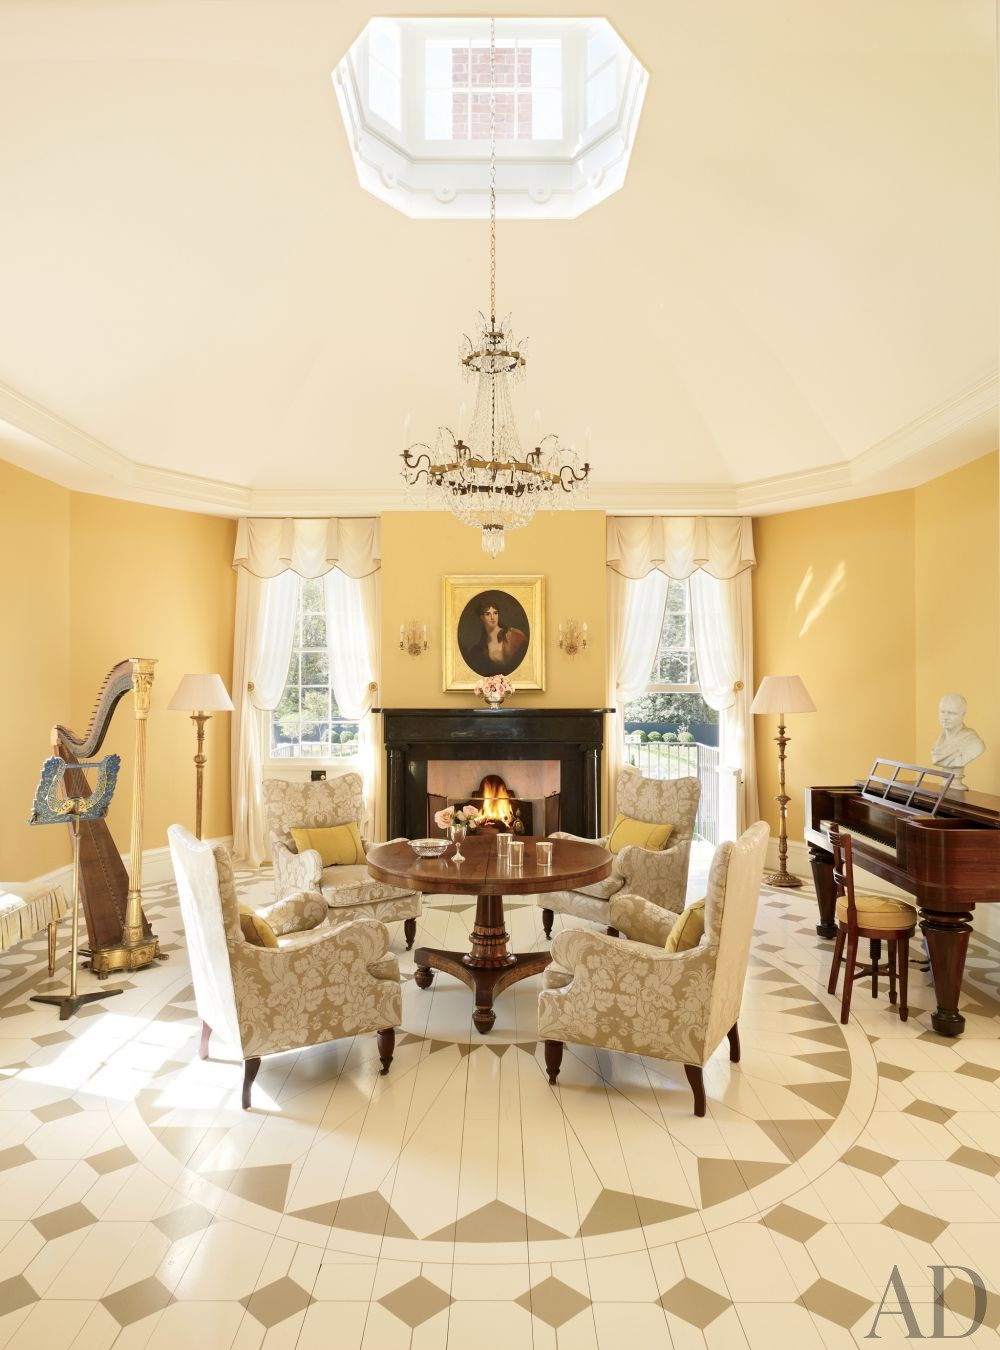 Traditional Living Room by Amelia T. Handegan Inc. and Tidewater Preservation Inc. in Rappahannock Valley, Virginia